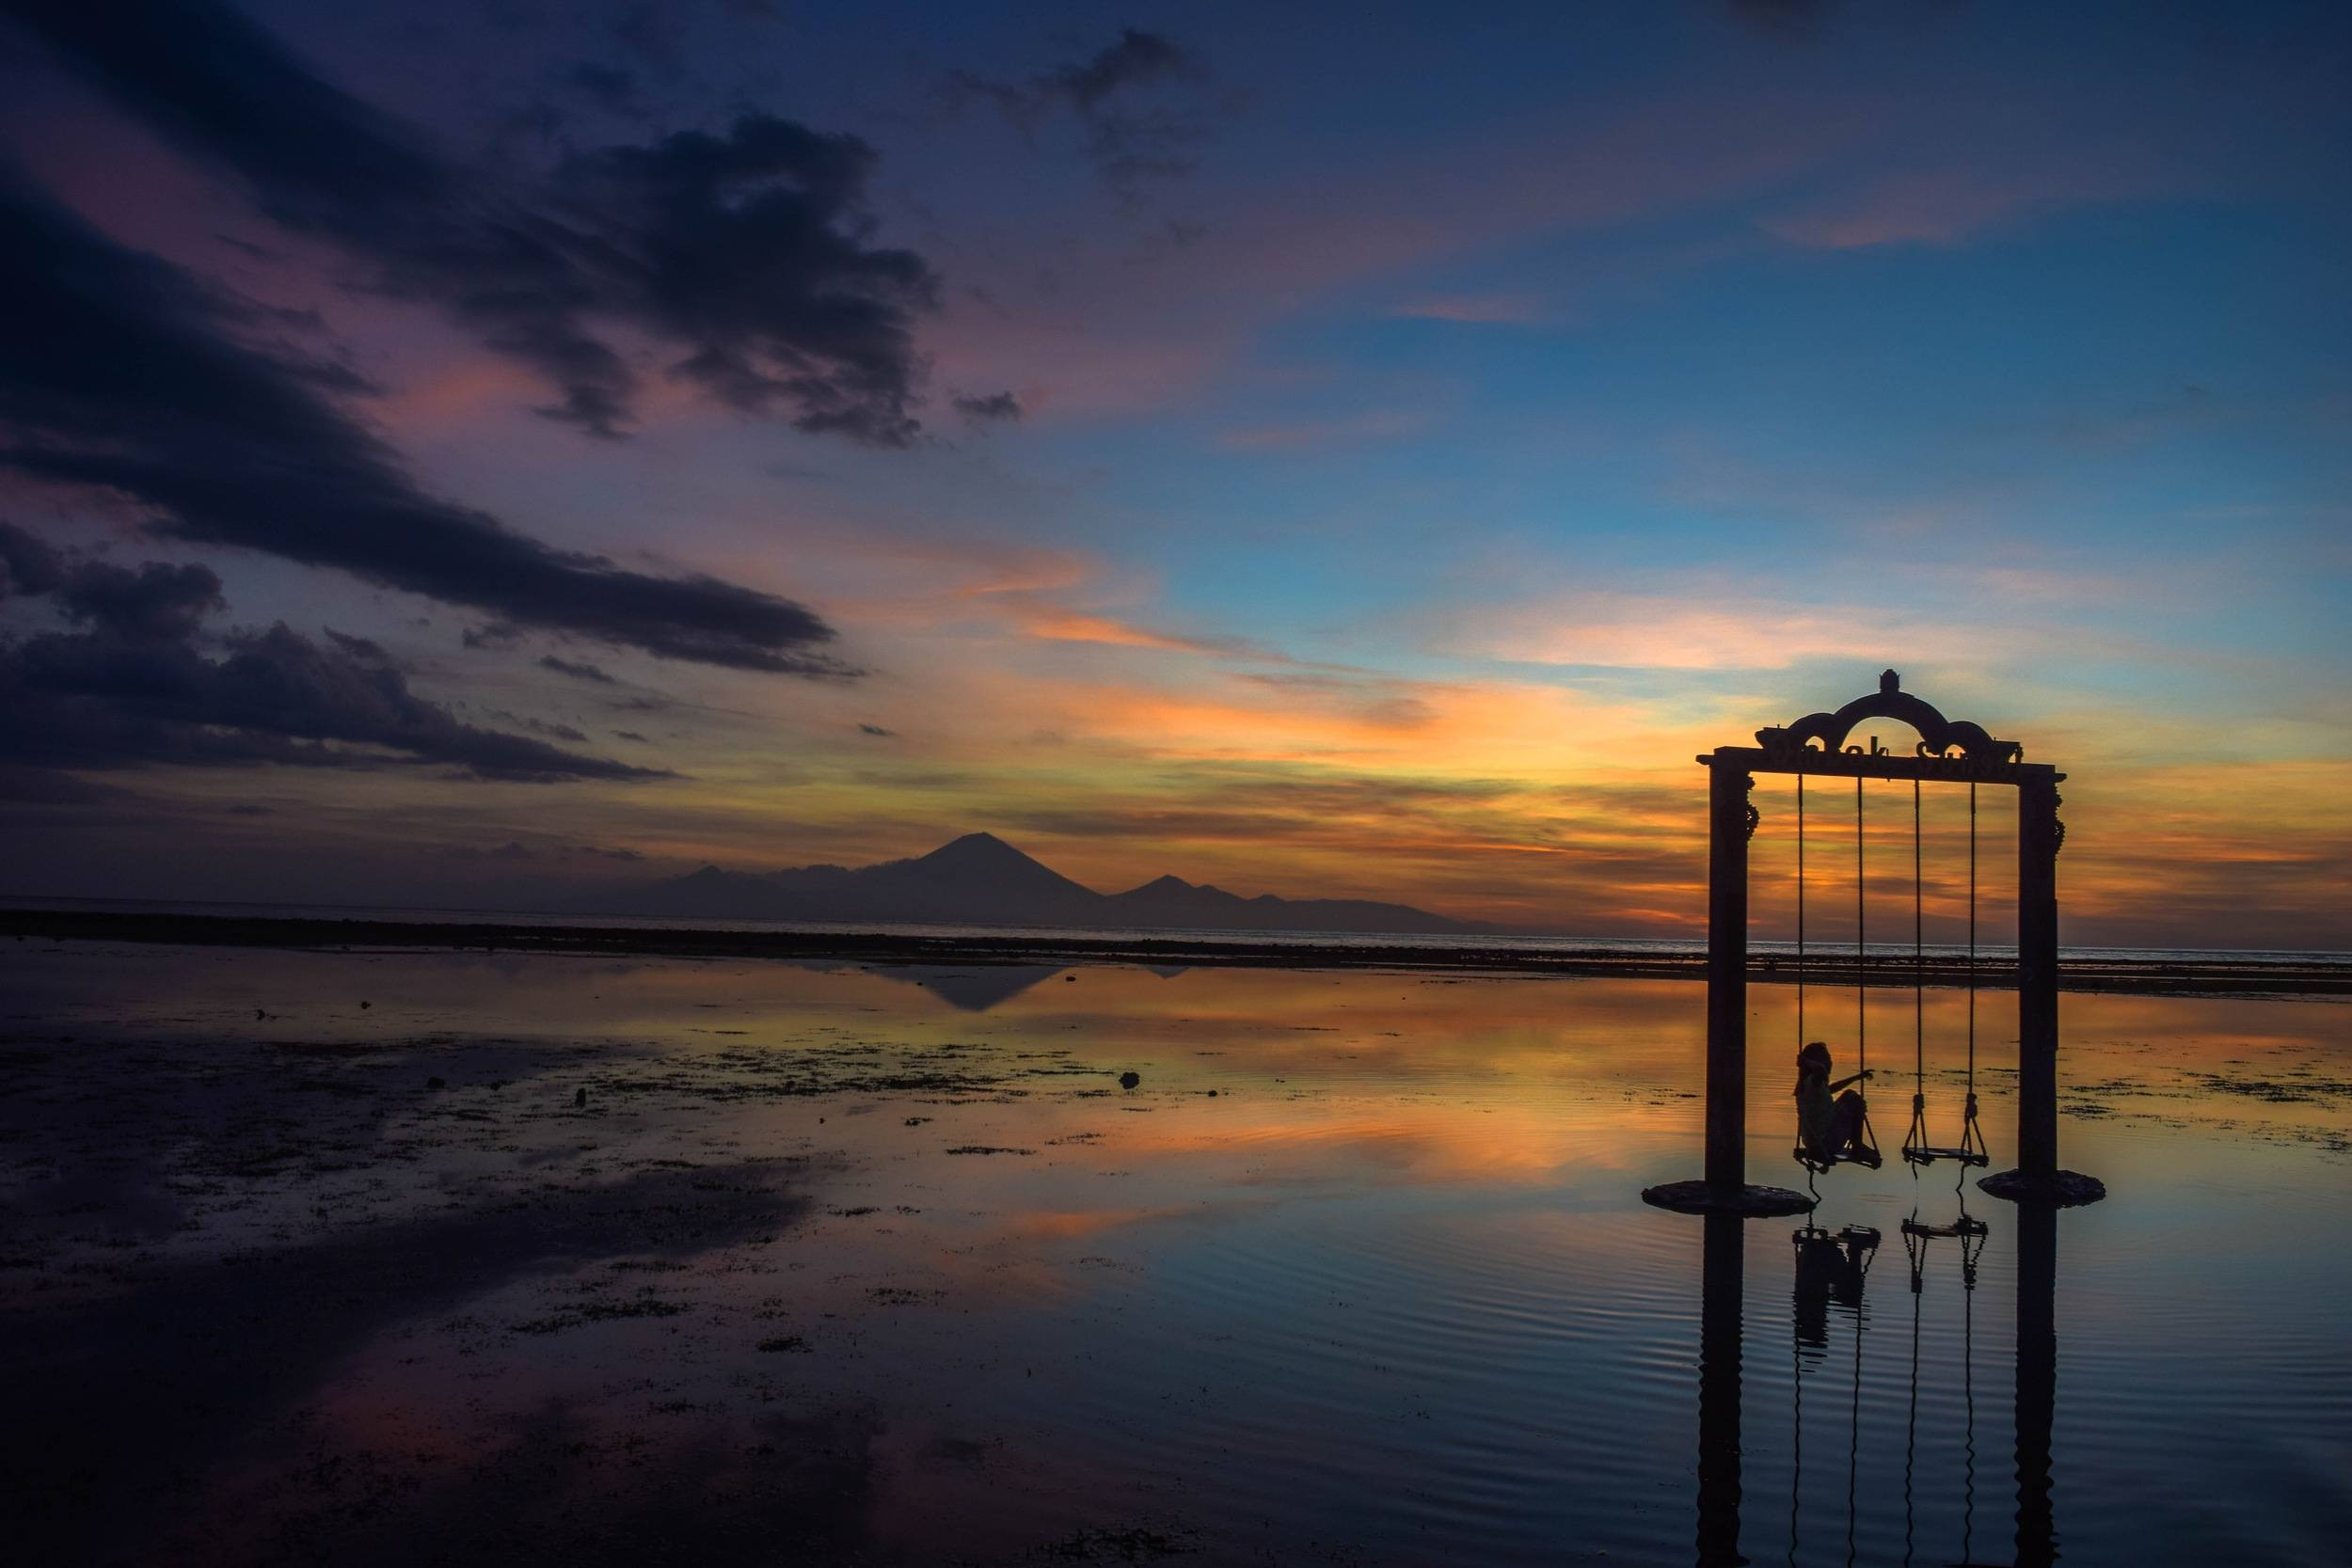 Gili Islands Sunset - Planning a Trip to Bali